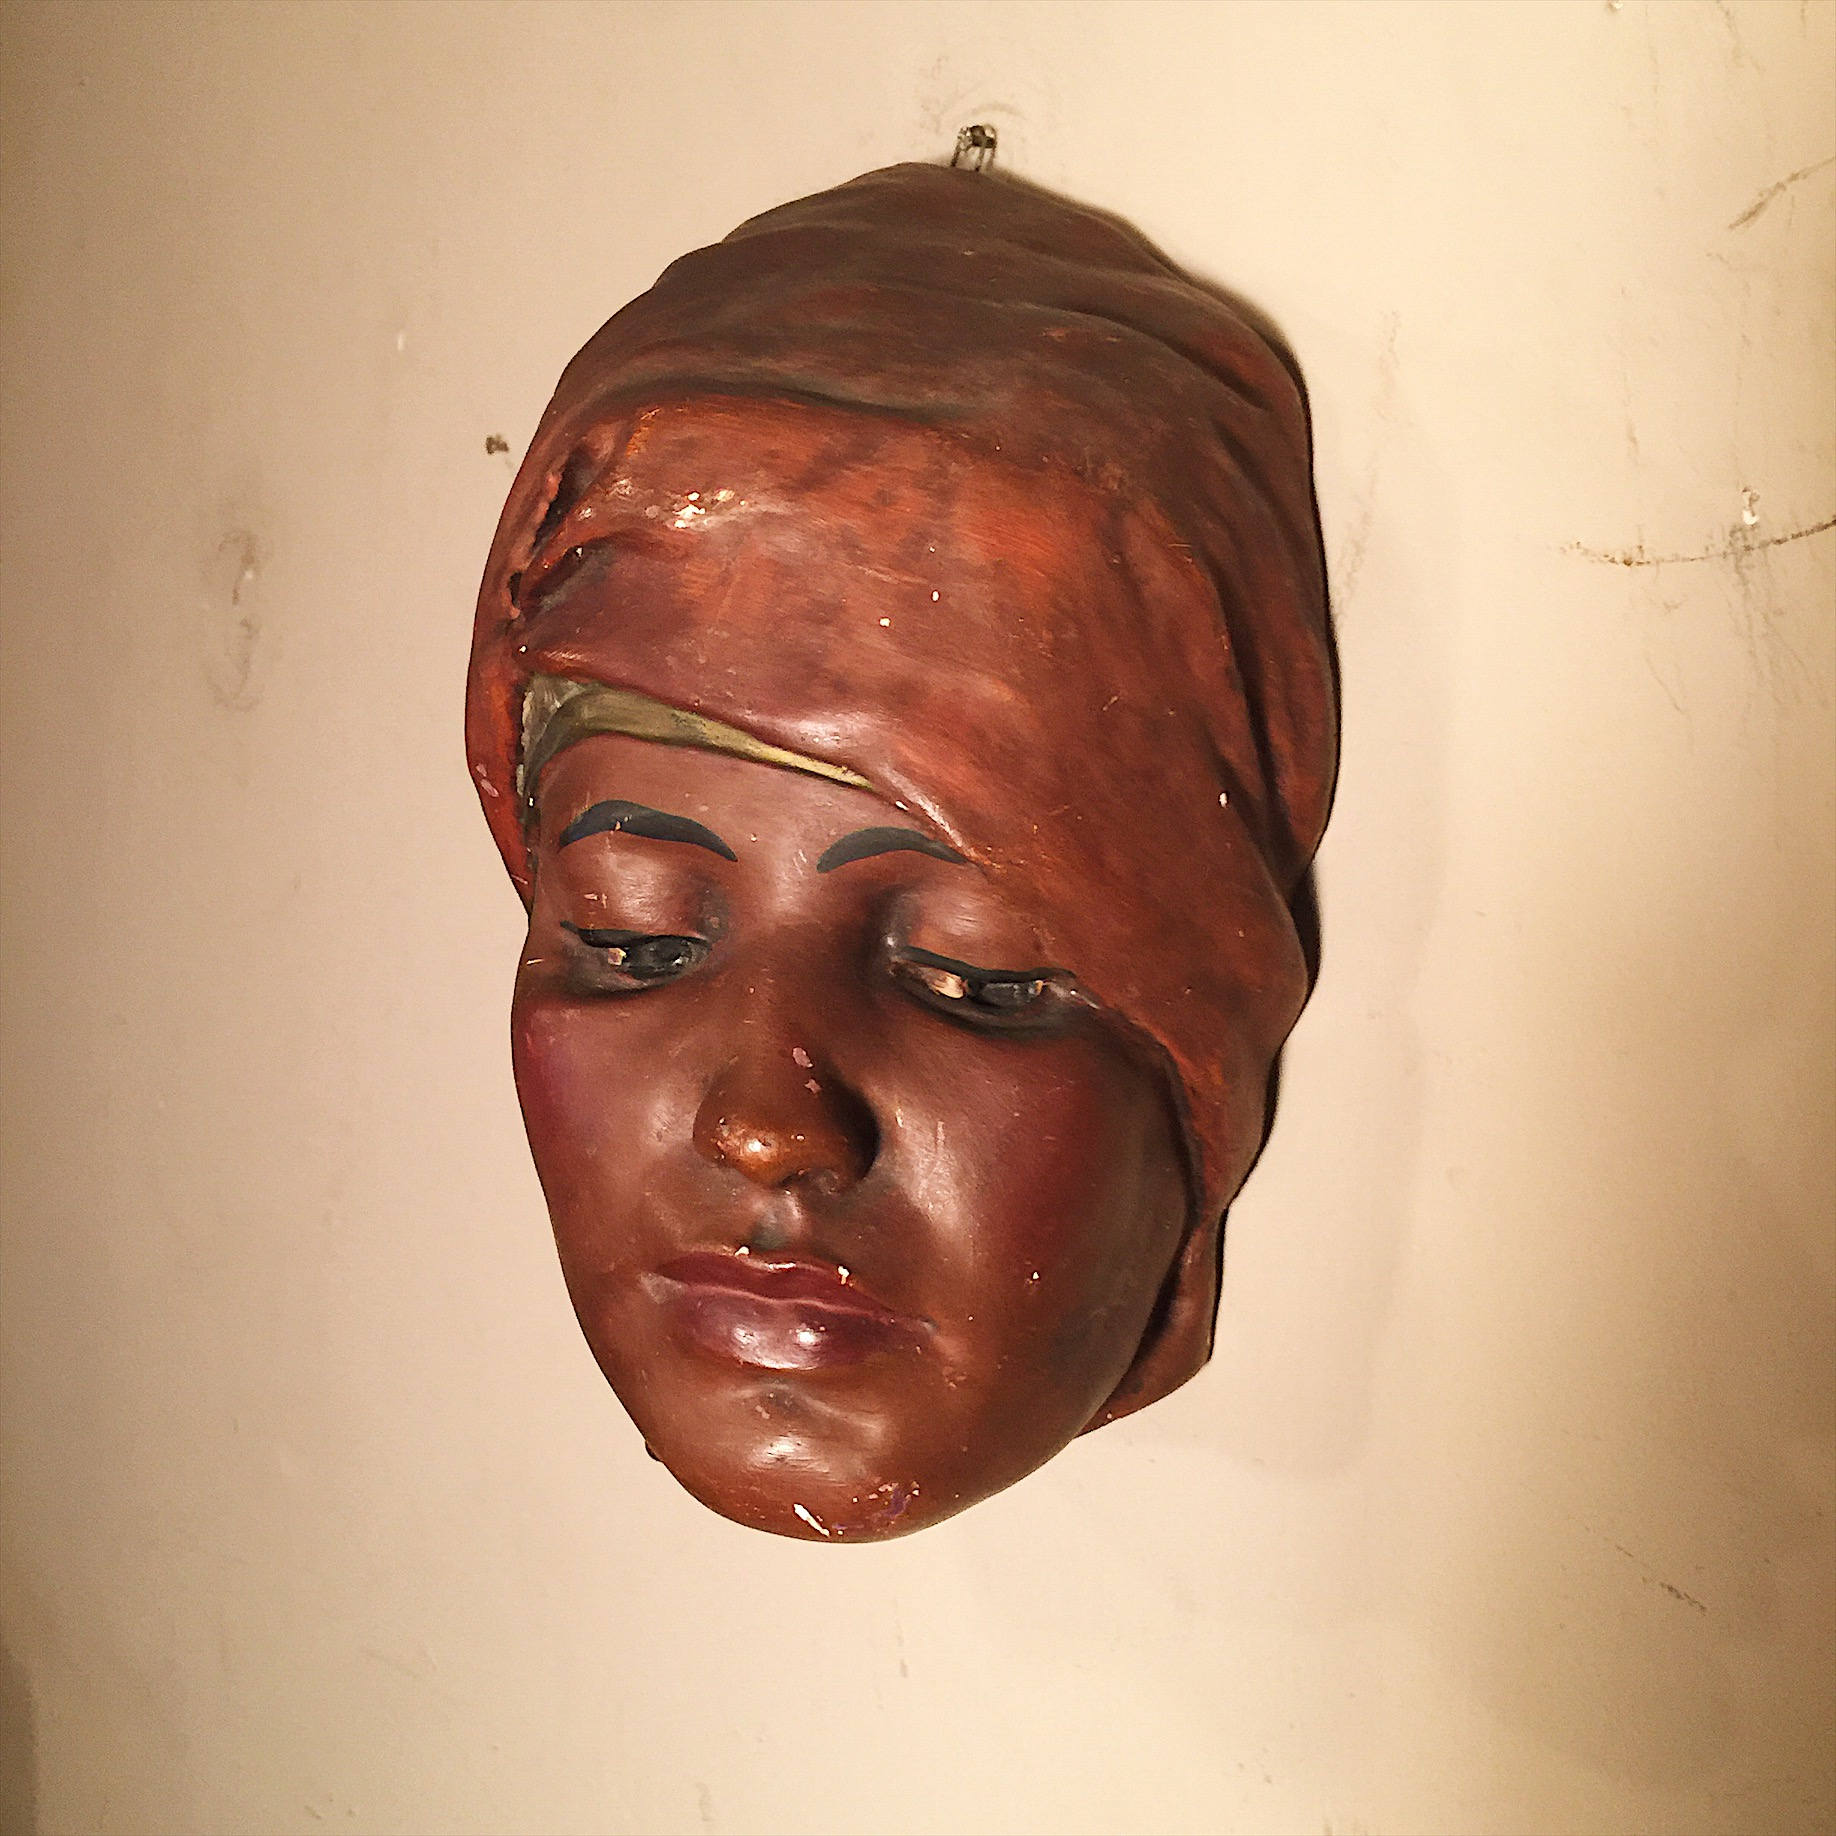 Vintage Plaster Bust of Woman in Headdress - 1950s? - Vintage Wall Art - Painted Plaster Sculpture - Vintage Wall Sculpture